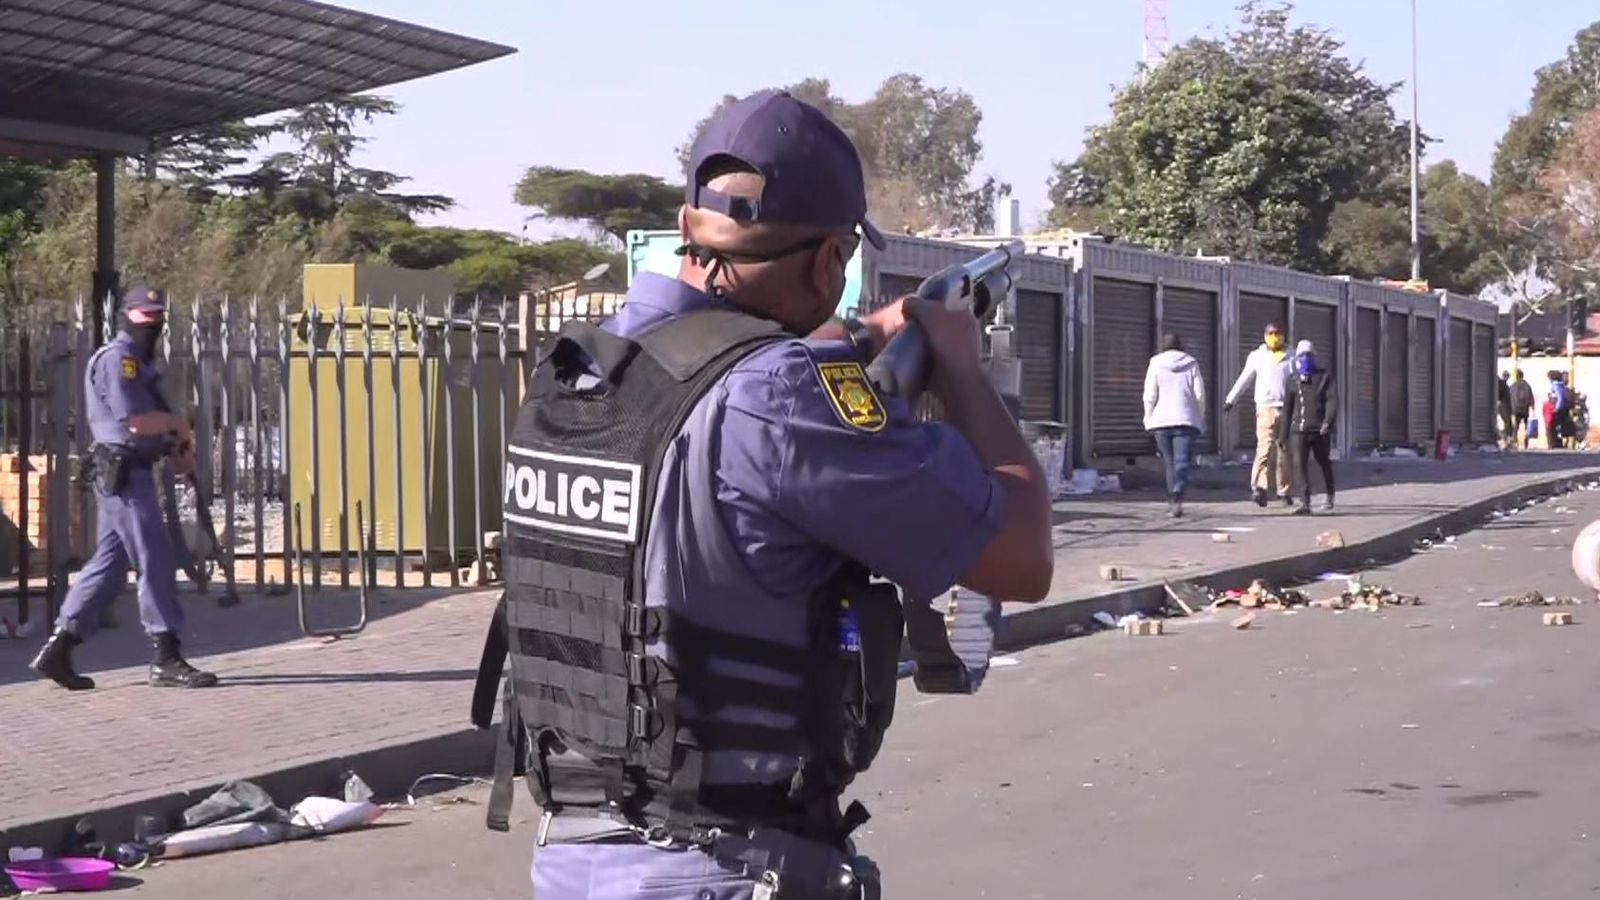 Jacob Zuma: Six people dead in South Africa as protests escalate over jailing of former president